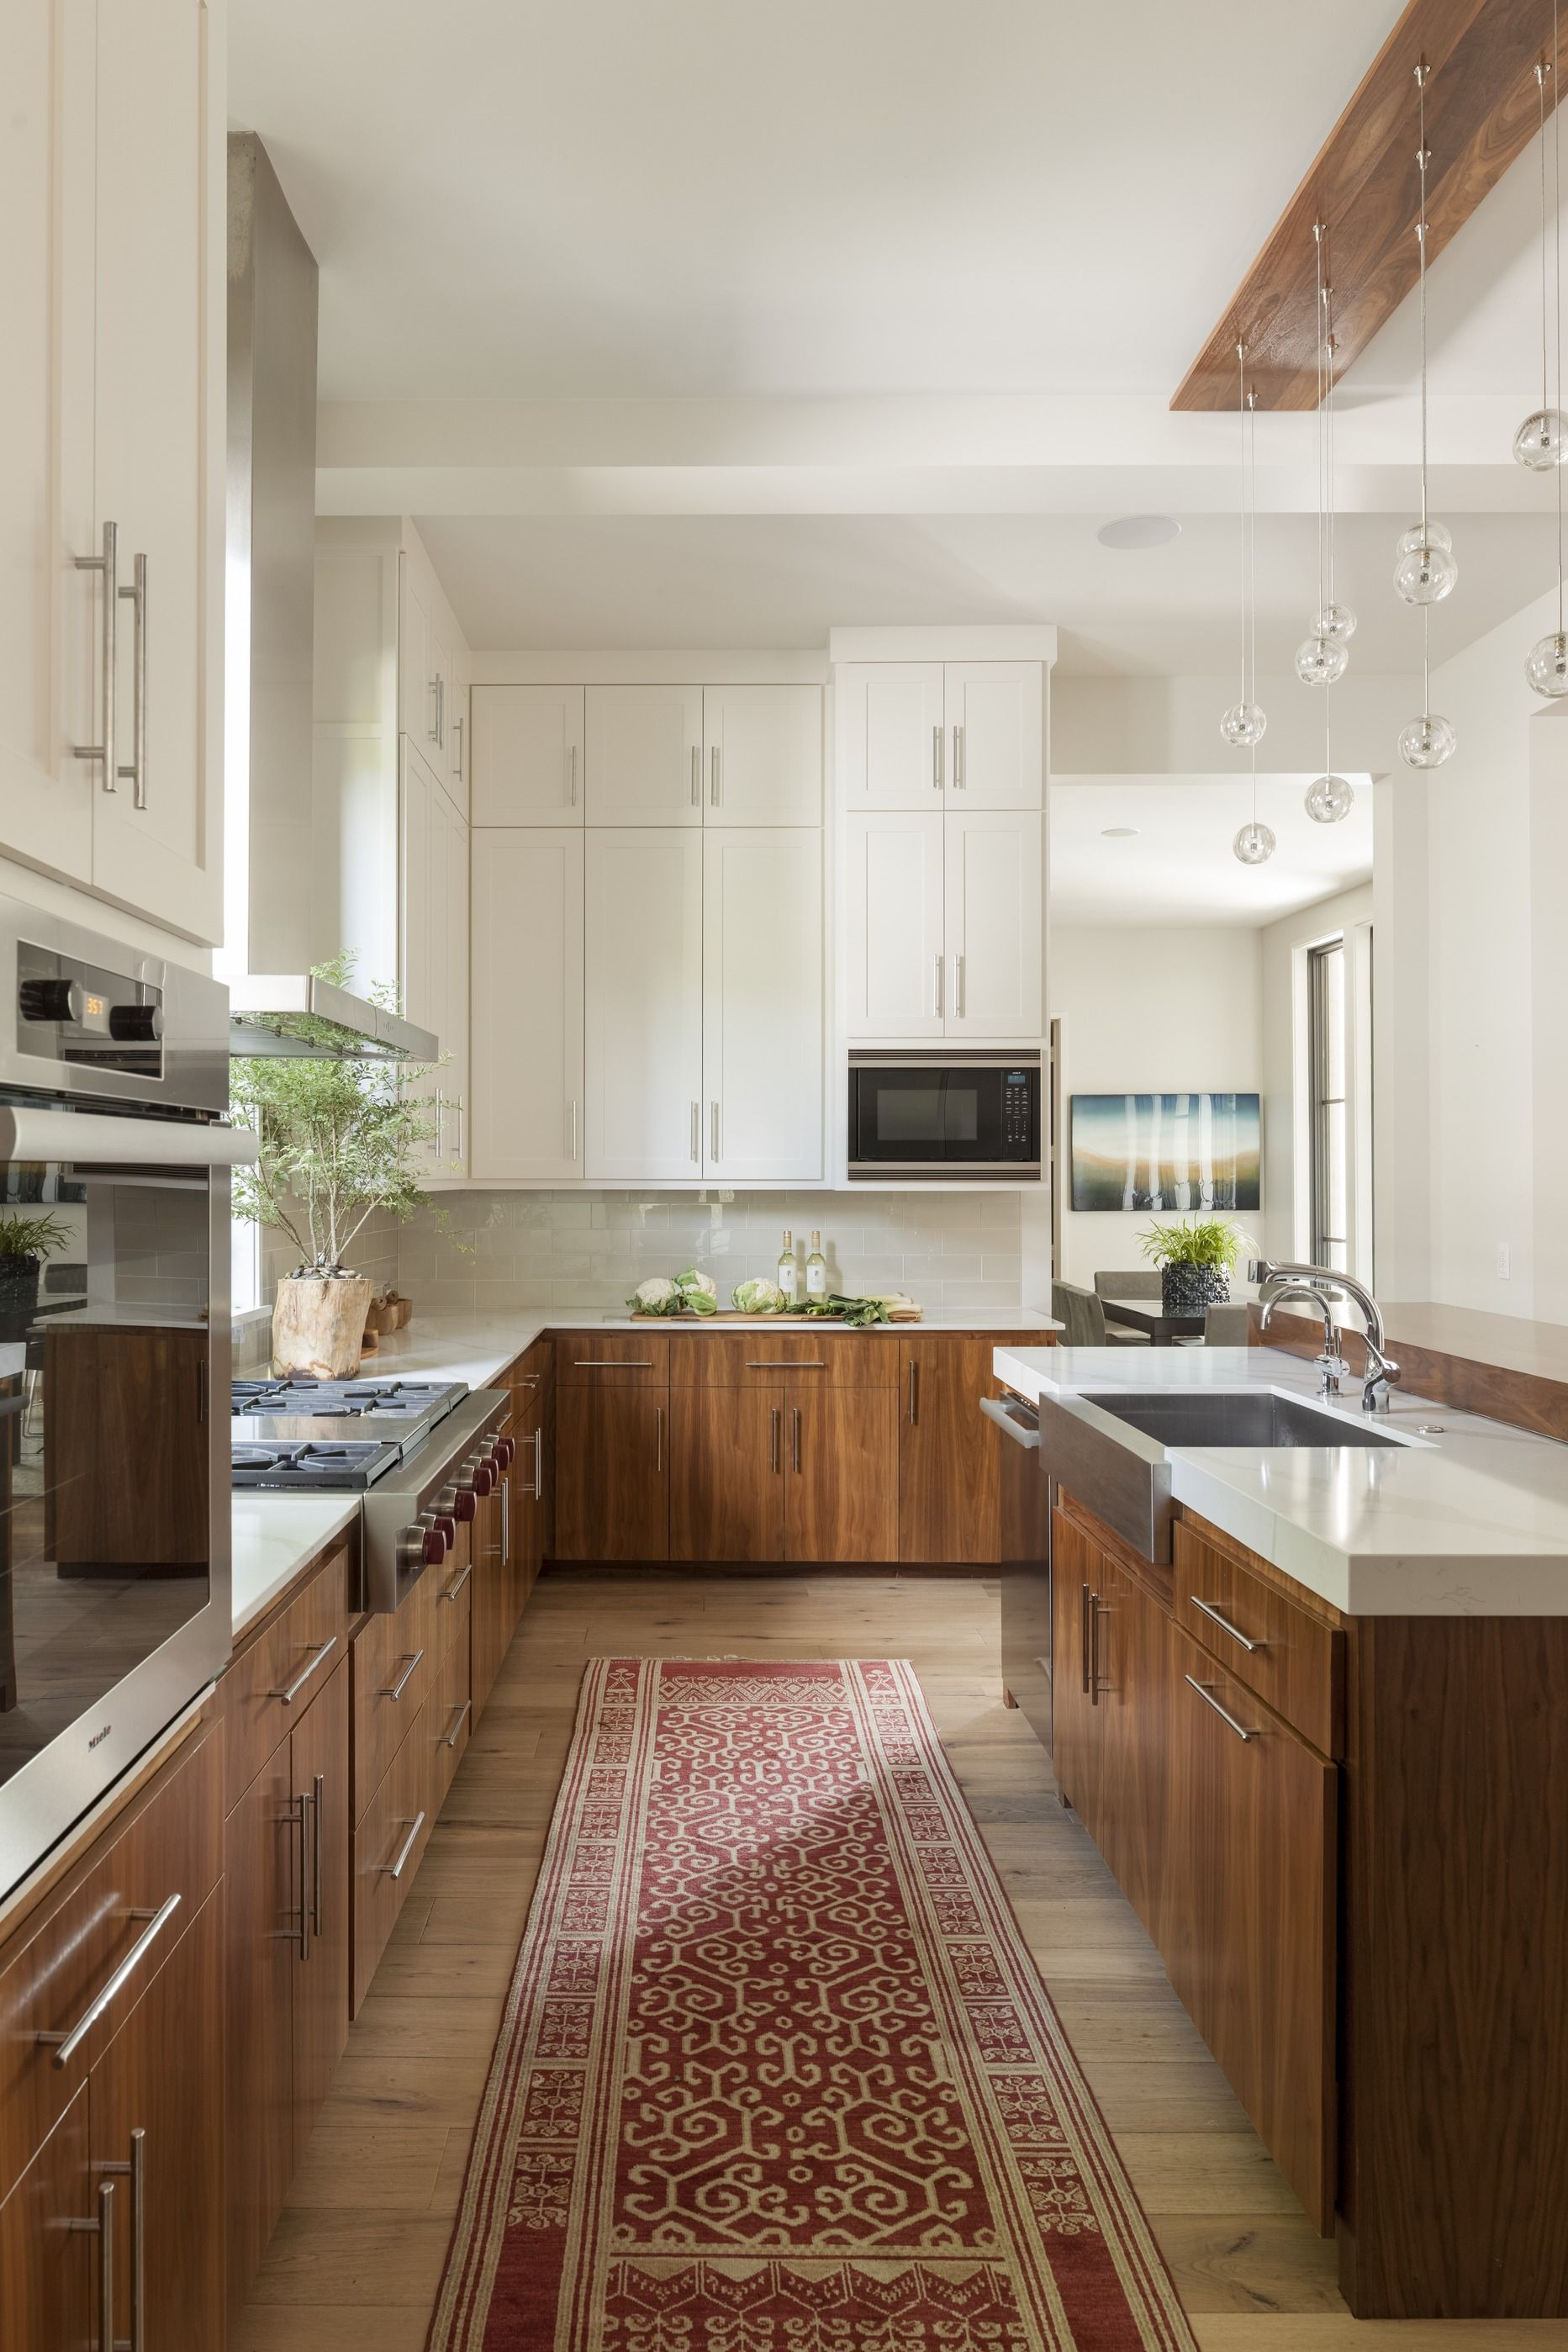 A Texas Home Rooted In Tradition Kitchen Remodel Small Kitchen Renovation Kitchen Remodel